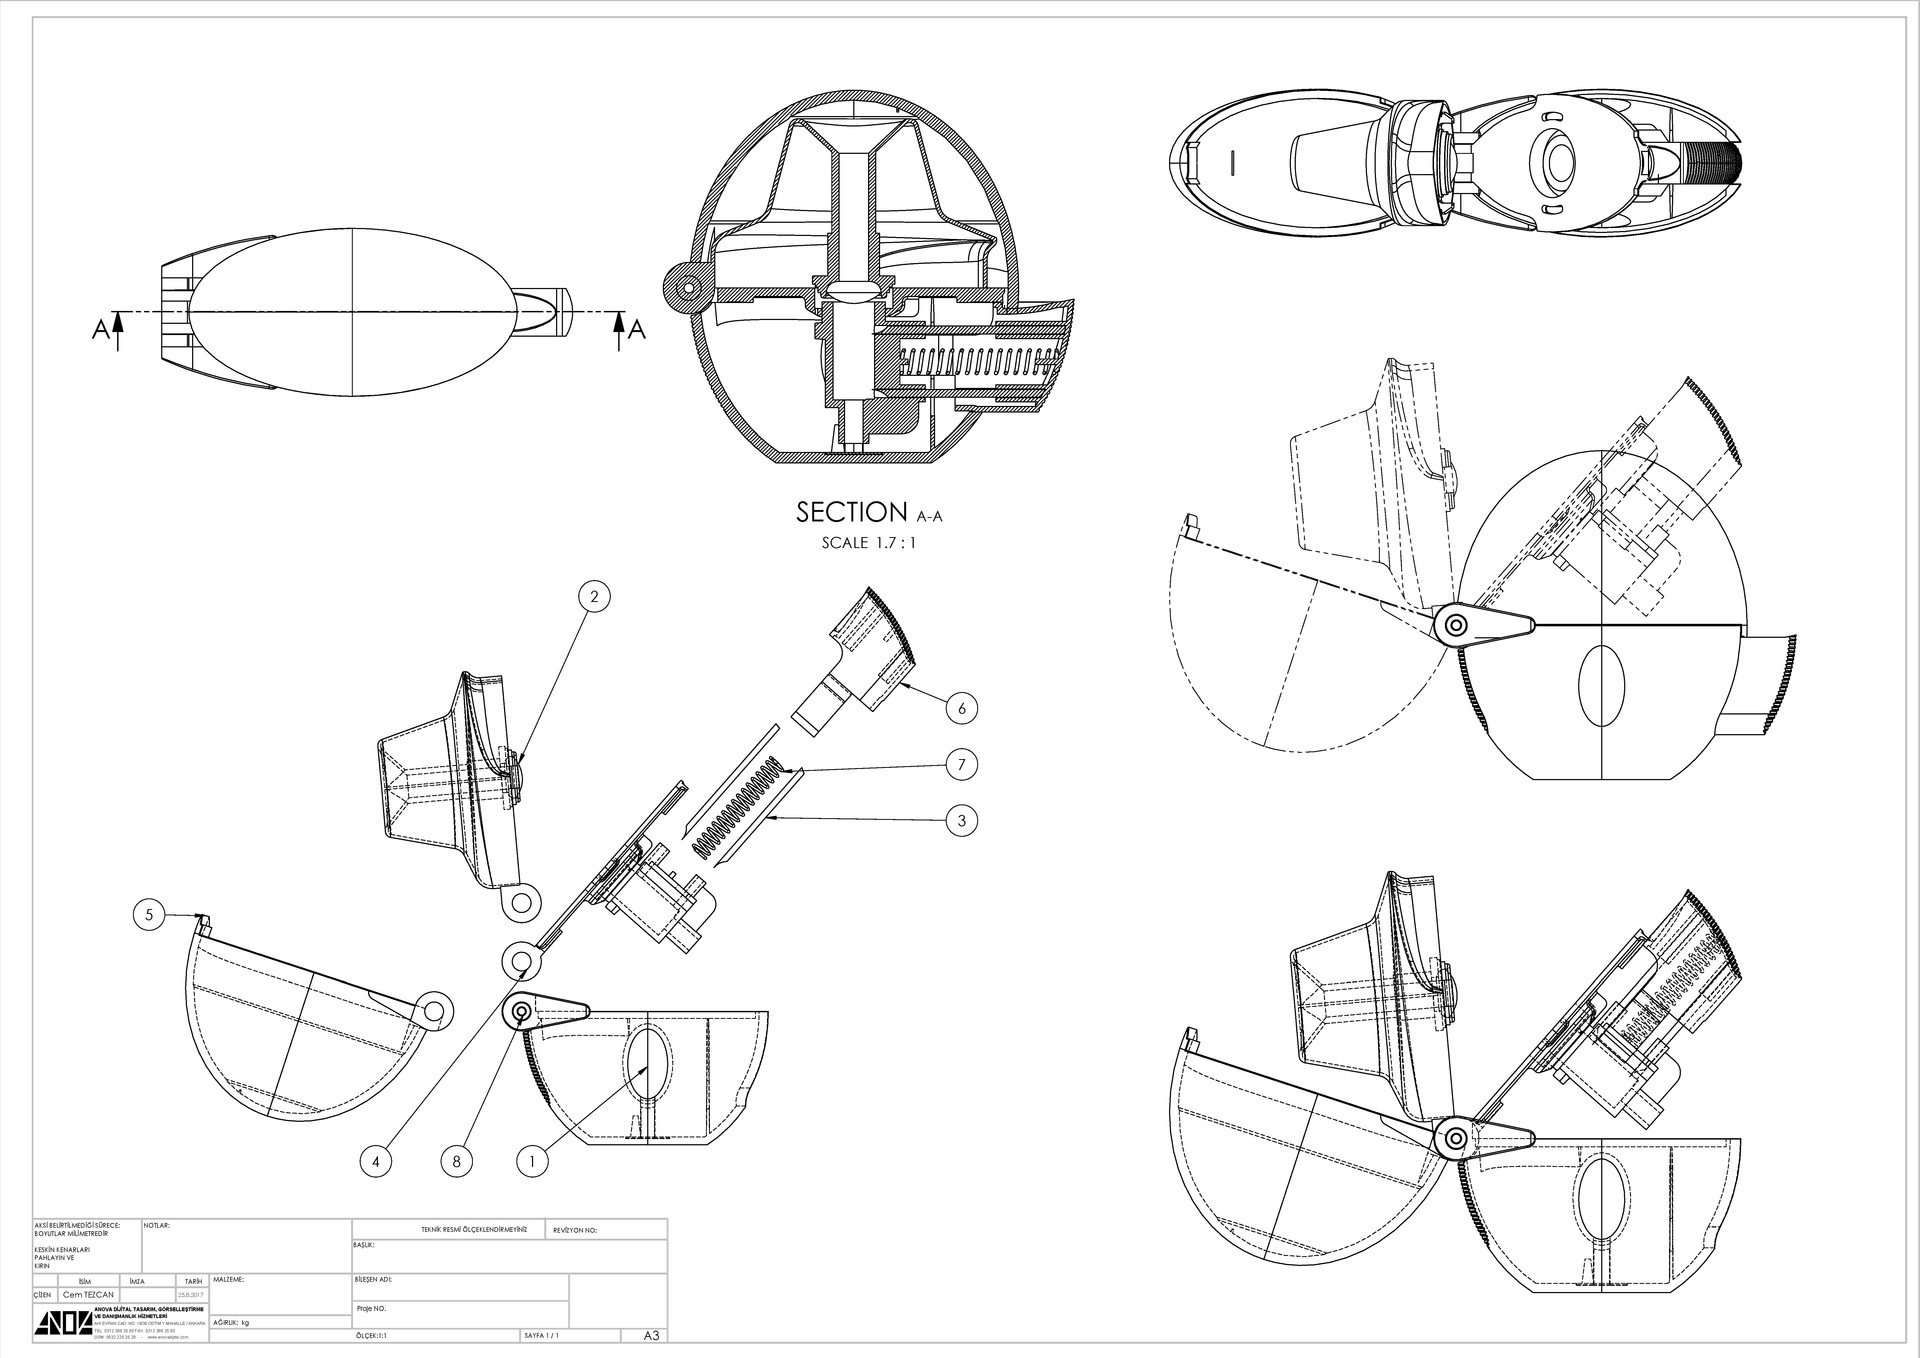 Cem tezcan technical drawing